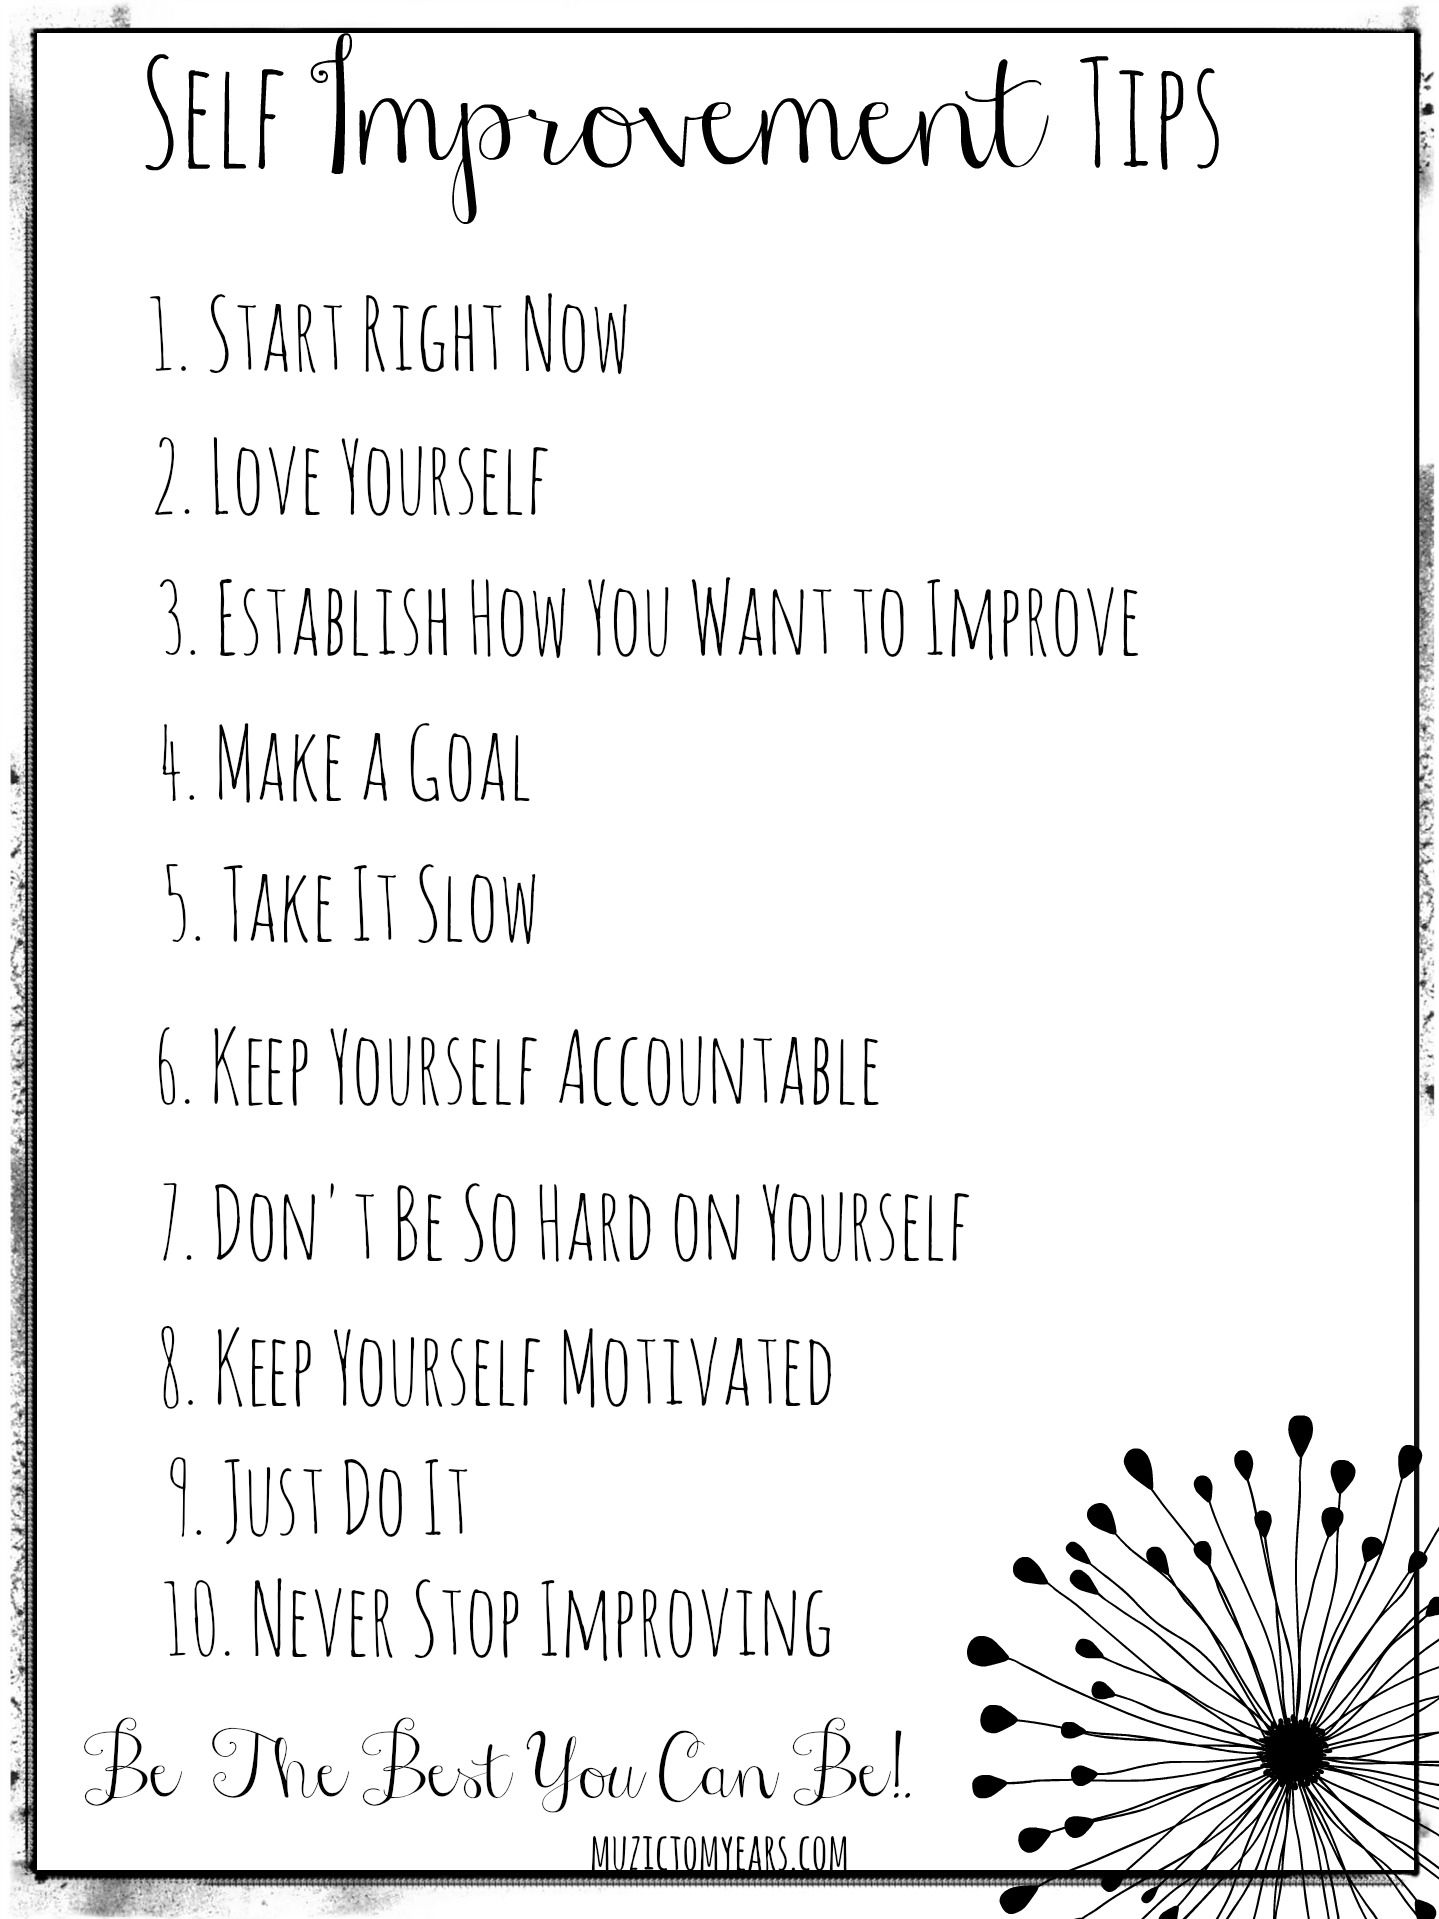 Self Improvement Quotes About Improving Yourself